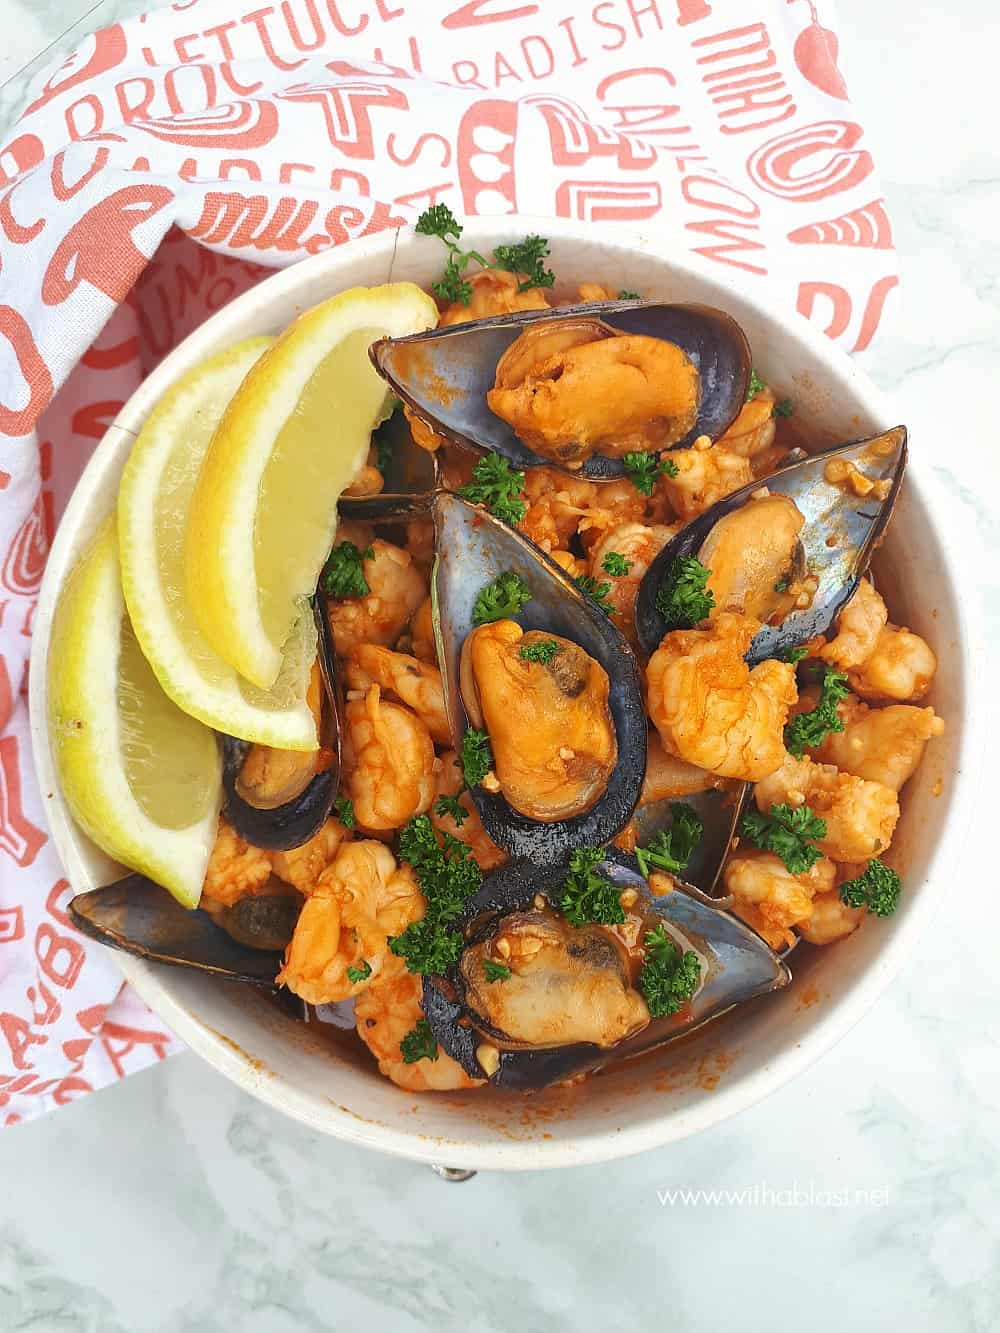 Red Prawns and Mussels are slightly spicy and nestled in a creamy paprika tomato sauce - so quick and easy to serve for dinner or as an appetizer